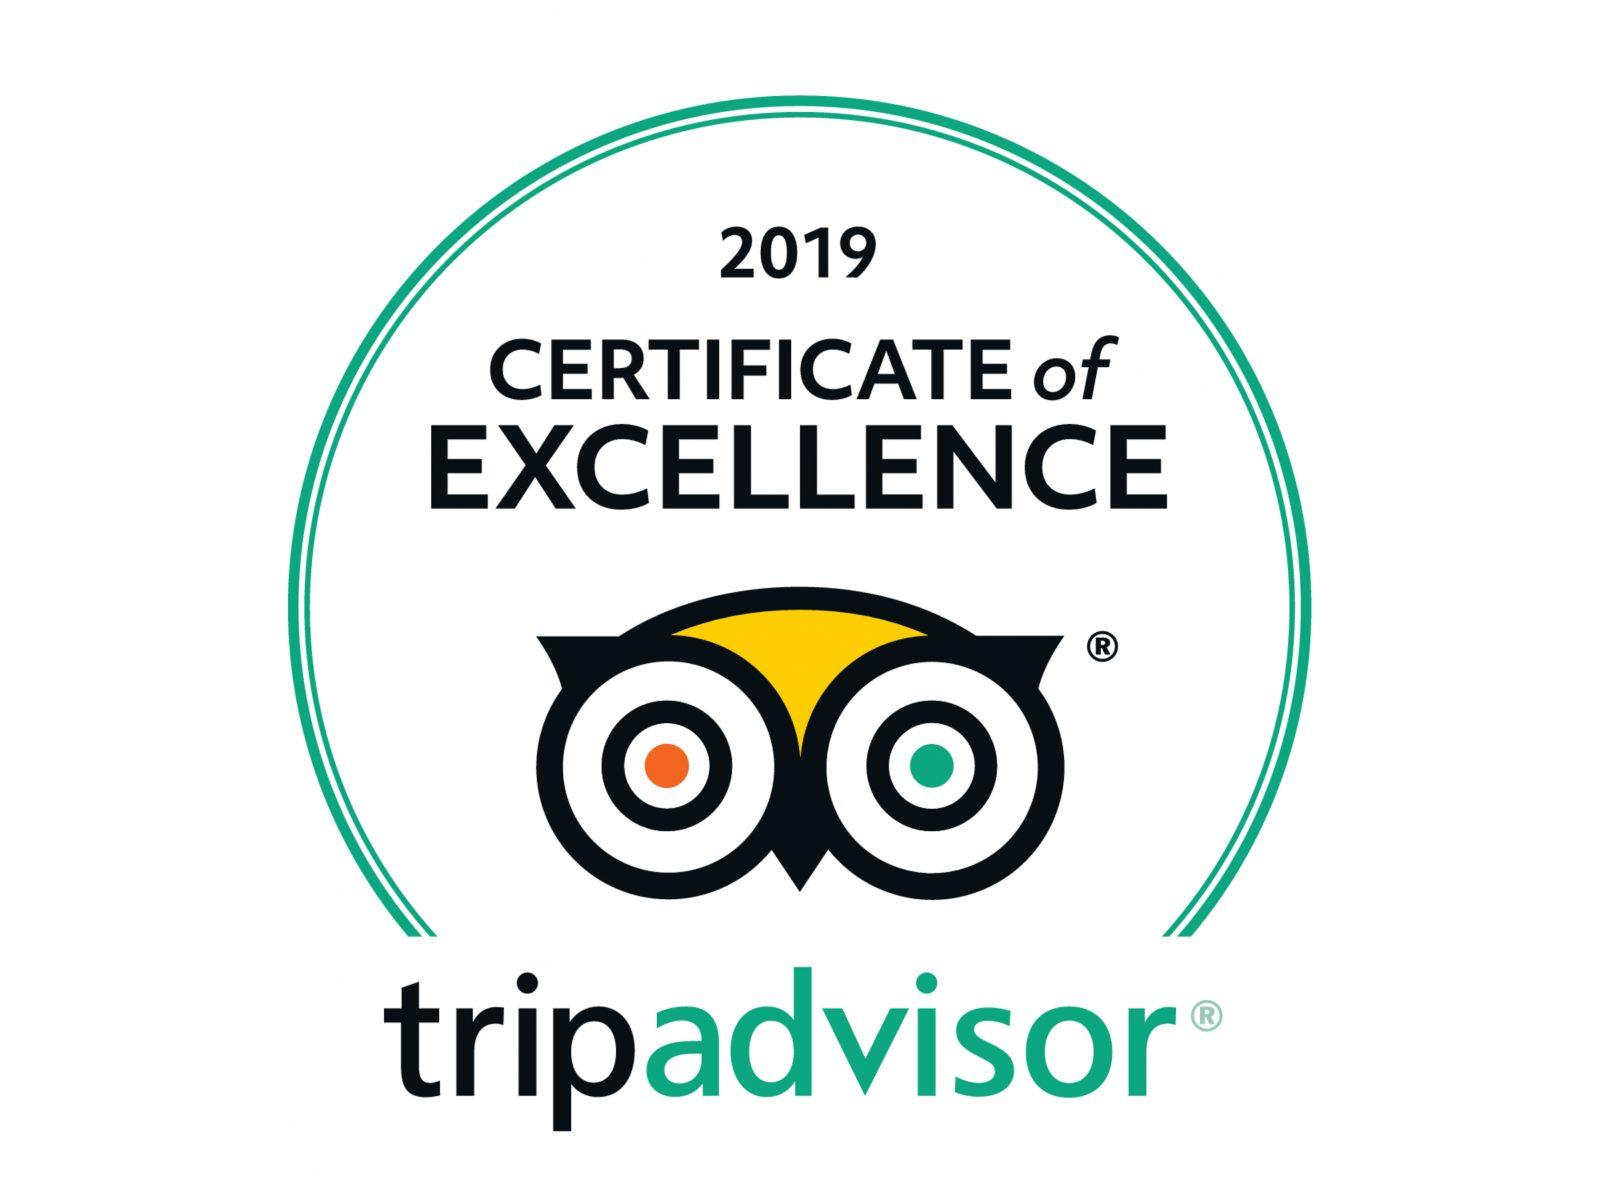 Image result for tripadvisor certificate of excellence 2019